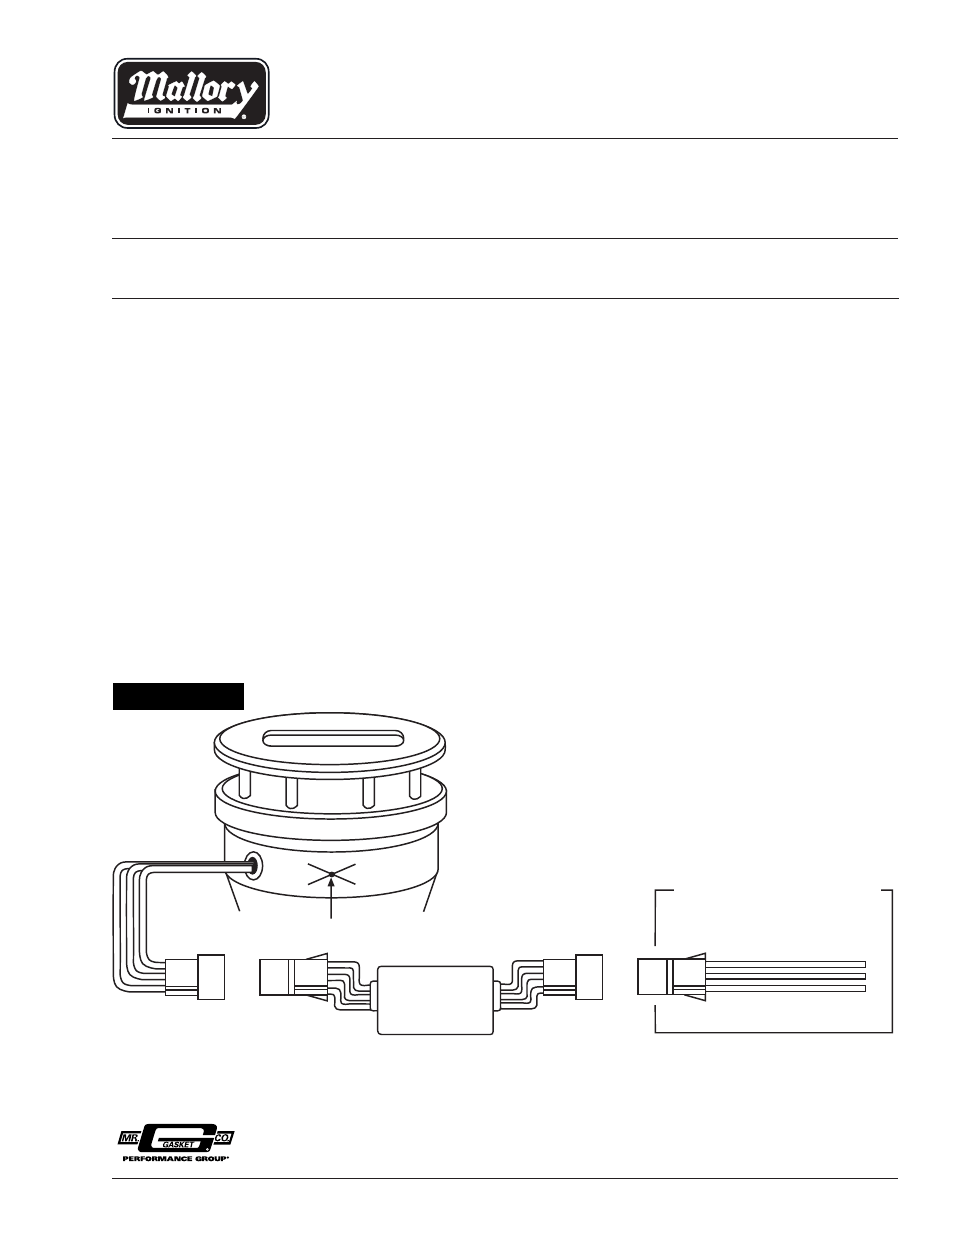 mallory ignition mallory circuit guard 29371 page1?resize\\\\\\\\\\\\\\\=665%2C861 t12 osram ballast wiring diagram t12 to t8 conversion diagram osram ballast wiring diagrams at alyssarenee.co